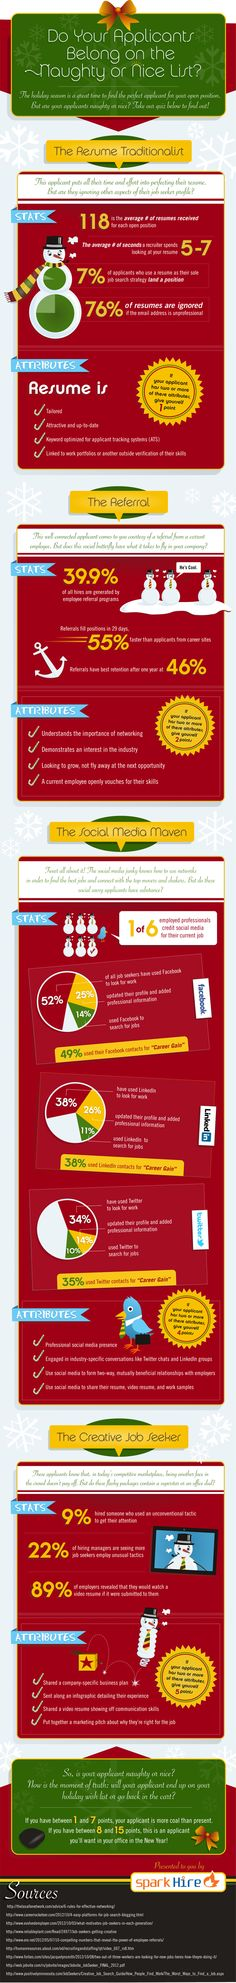 Are Your Candidates Naughty or Nice? [INFOGRAPHIC] | Come Recommended